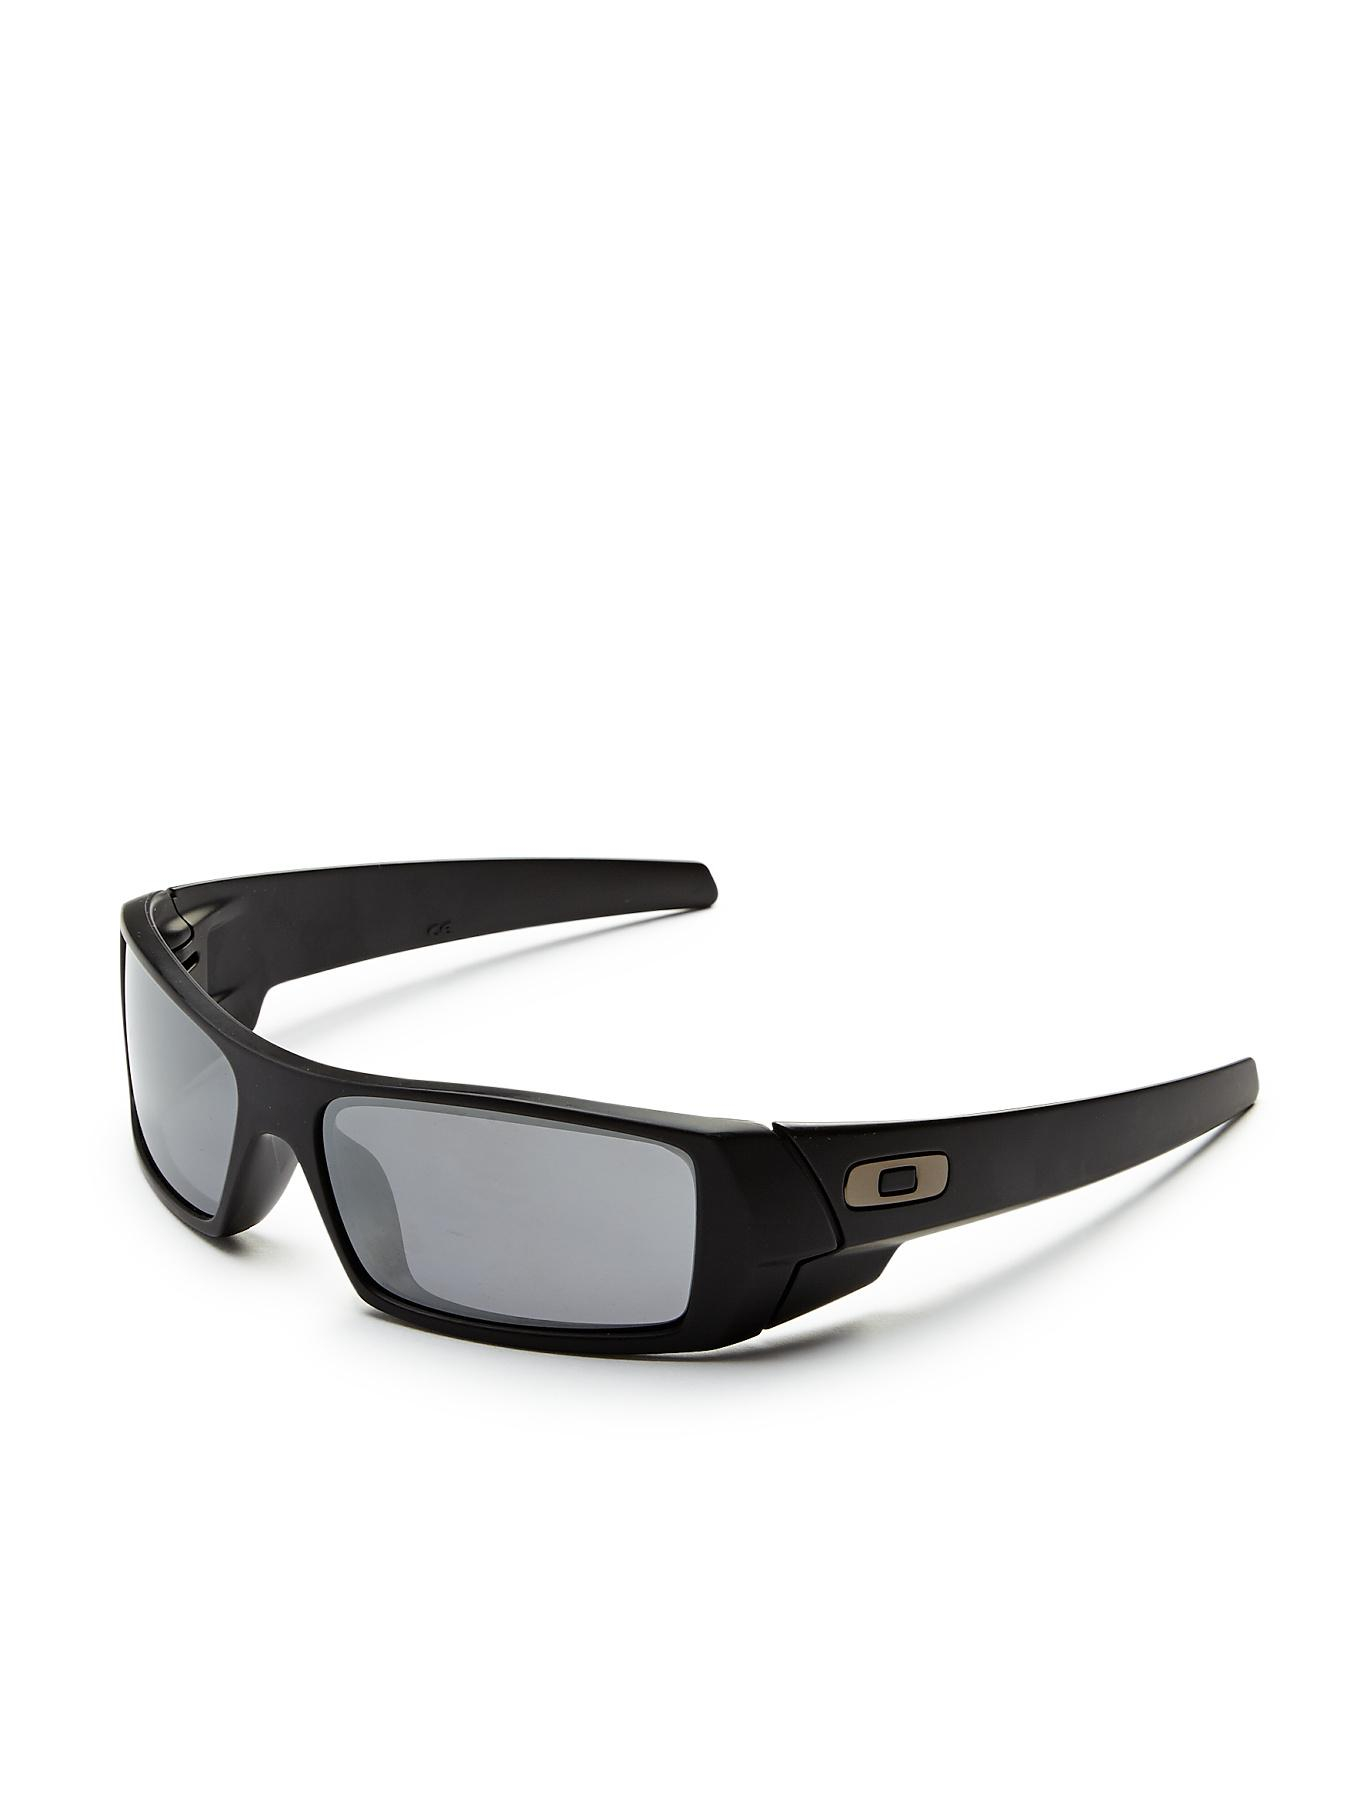 mens sunglasses oakley  Mens Sunglasses Oakley - Ficts